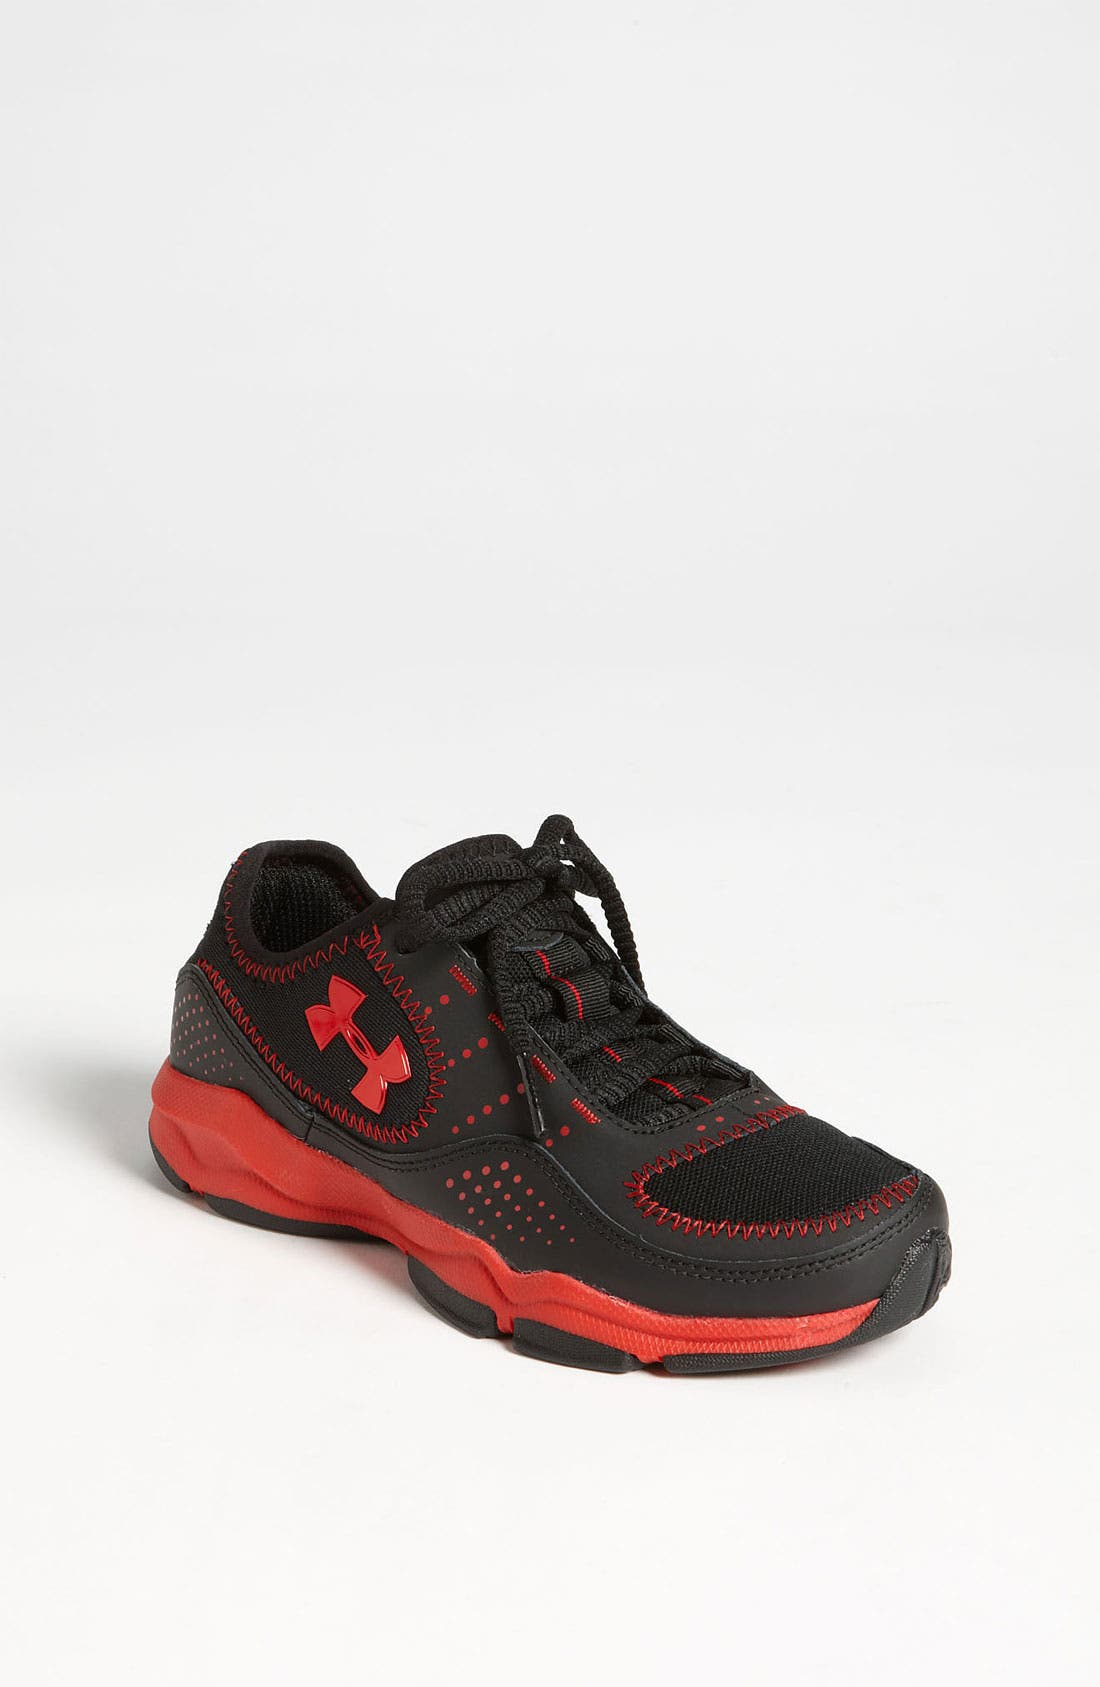 Alternate Image 1 Selected - Under Armour 'Defend' Sneaker (Toddler, Little Kid & Big Kid)